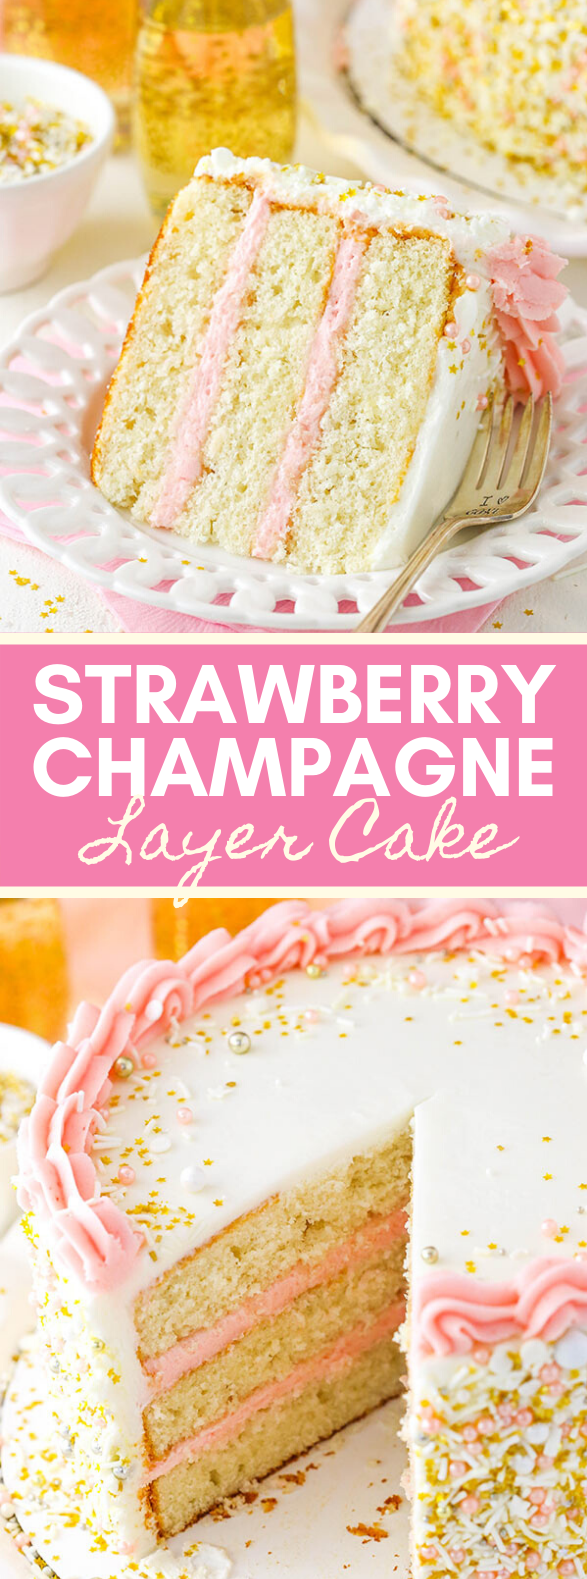 STRAWBERRY CHAMPAGNE LAYER CAKE #sweets #desserts